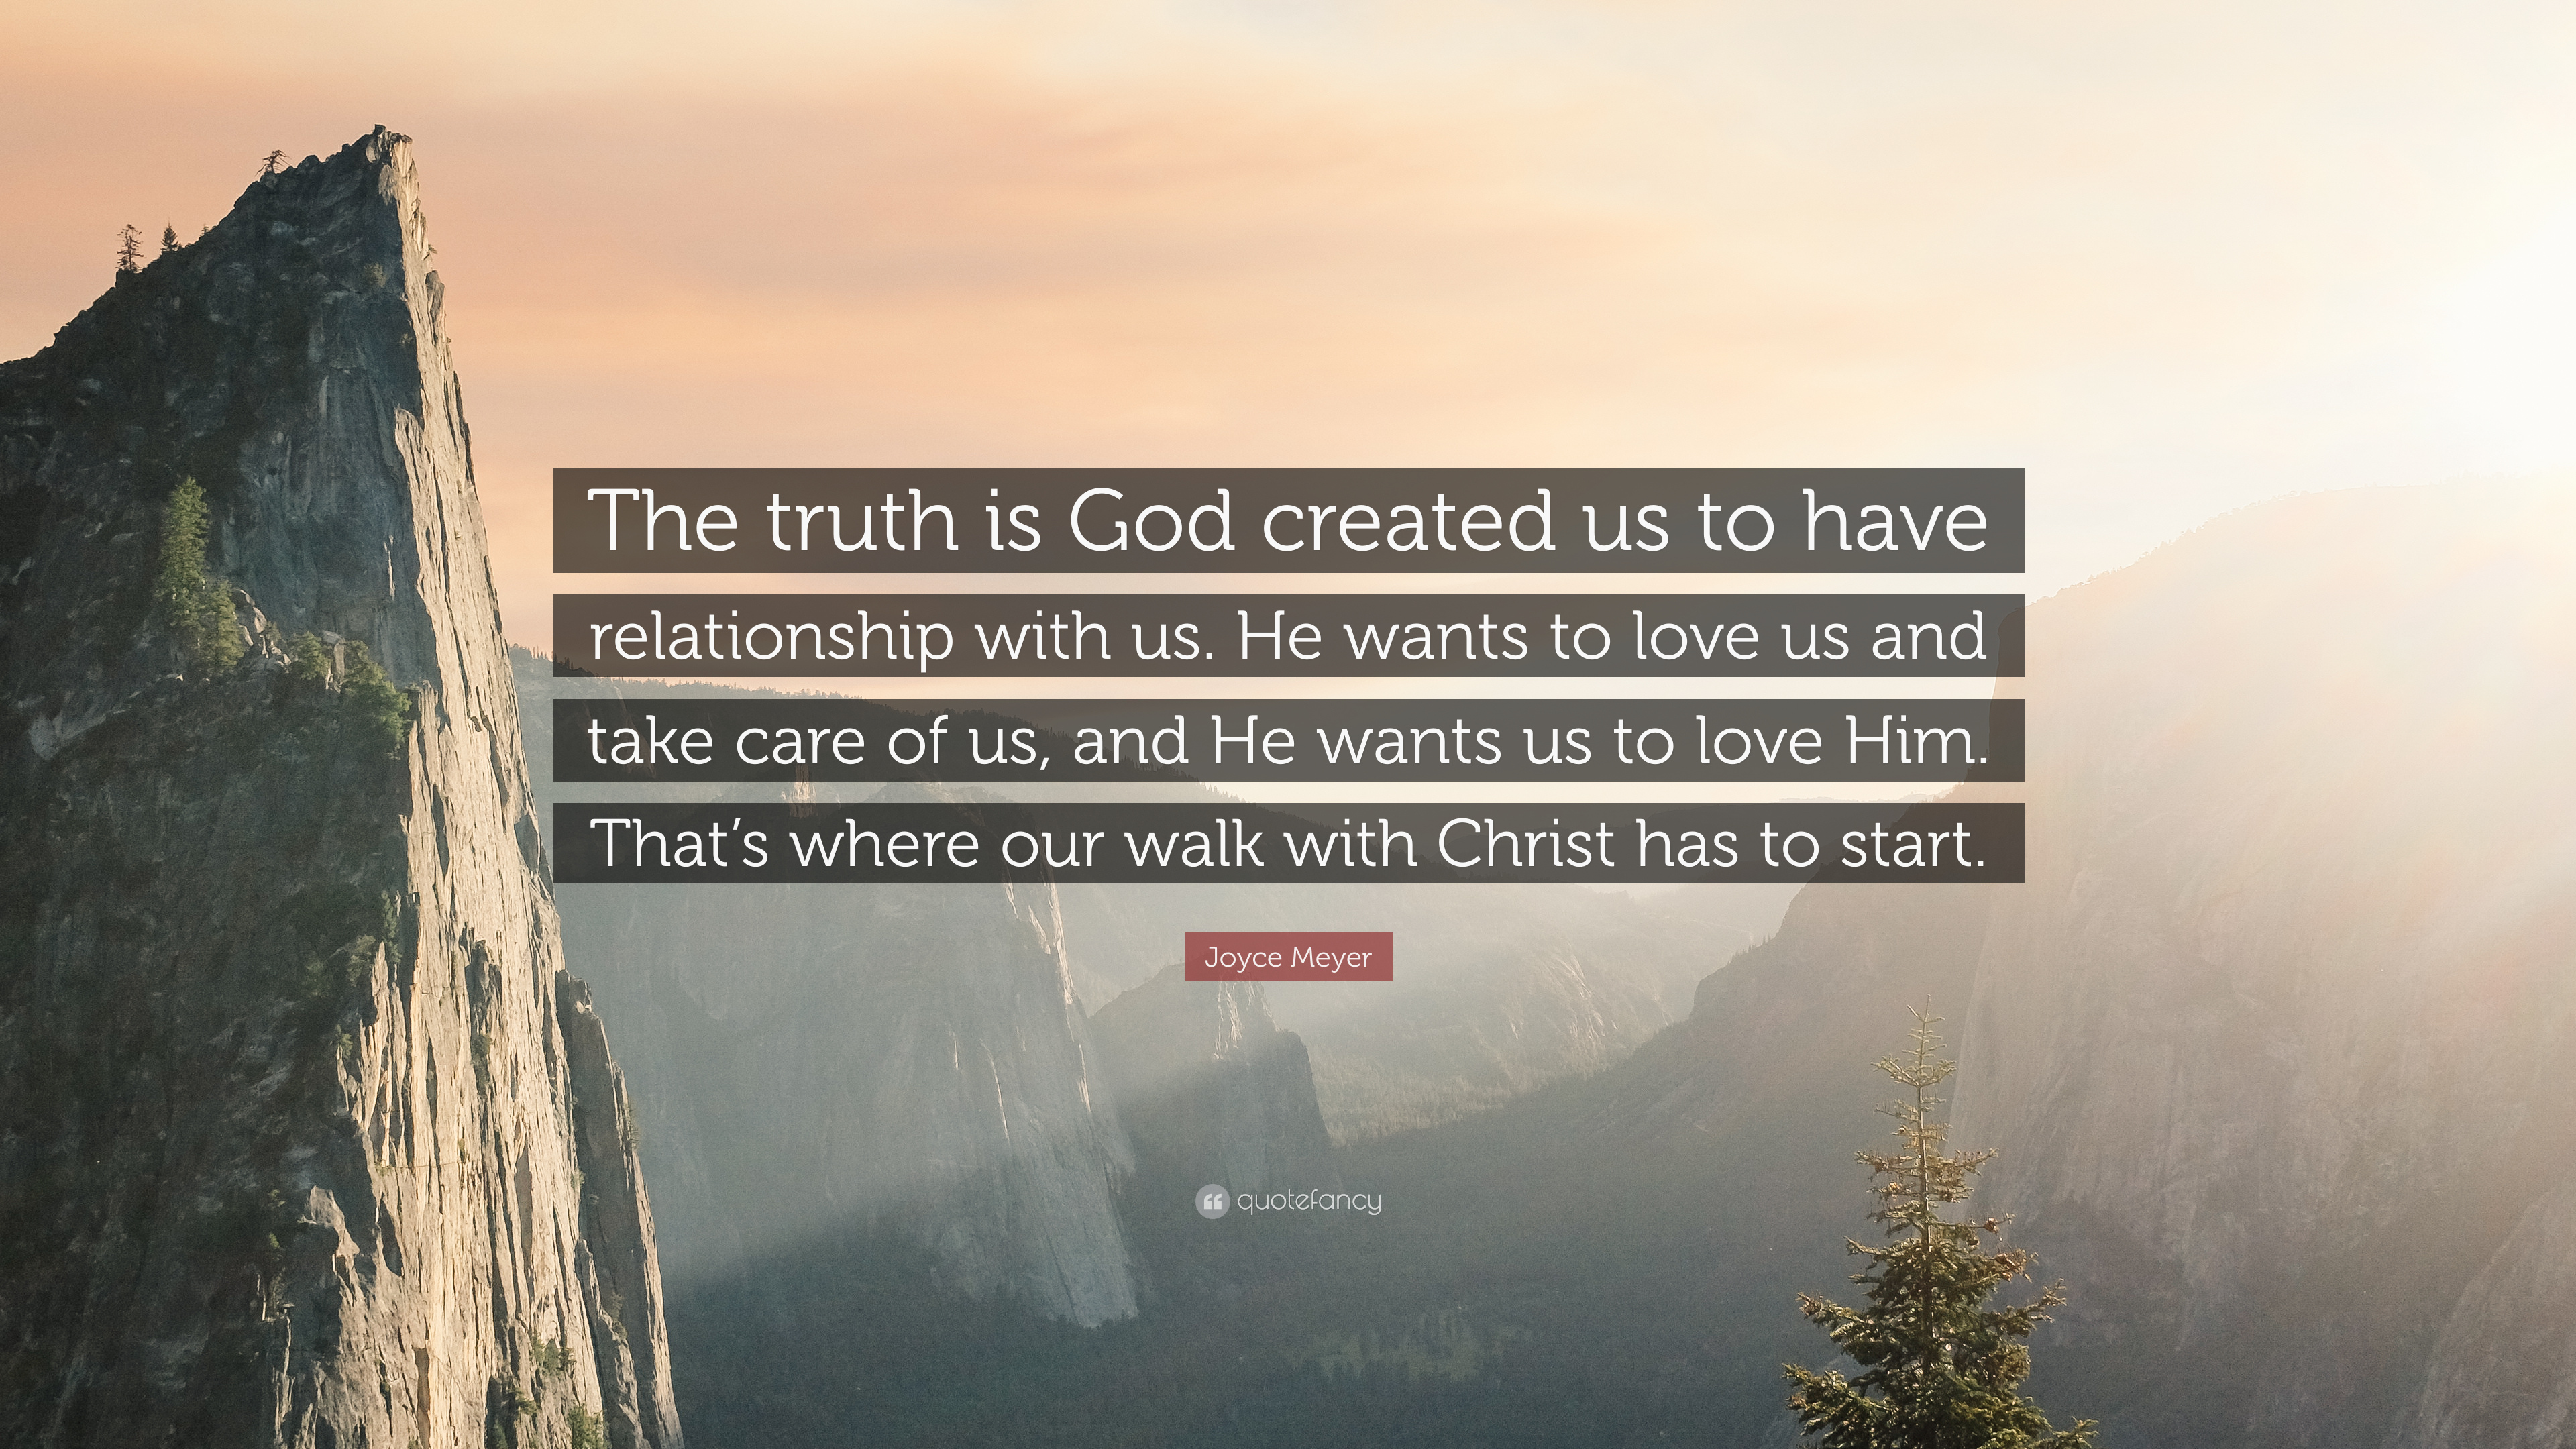 God created us for relationship